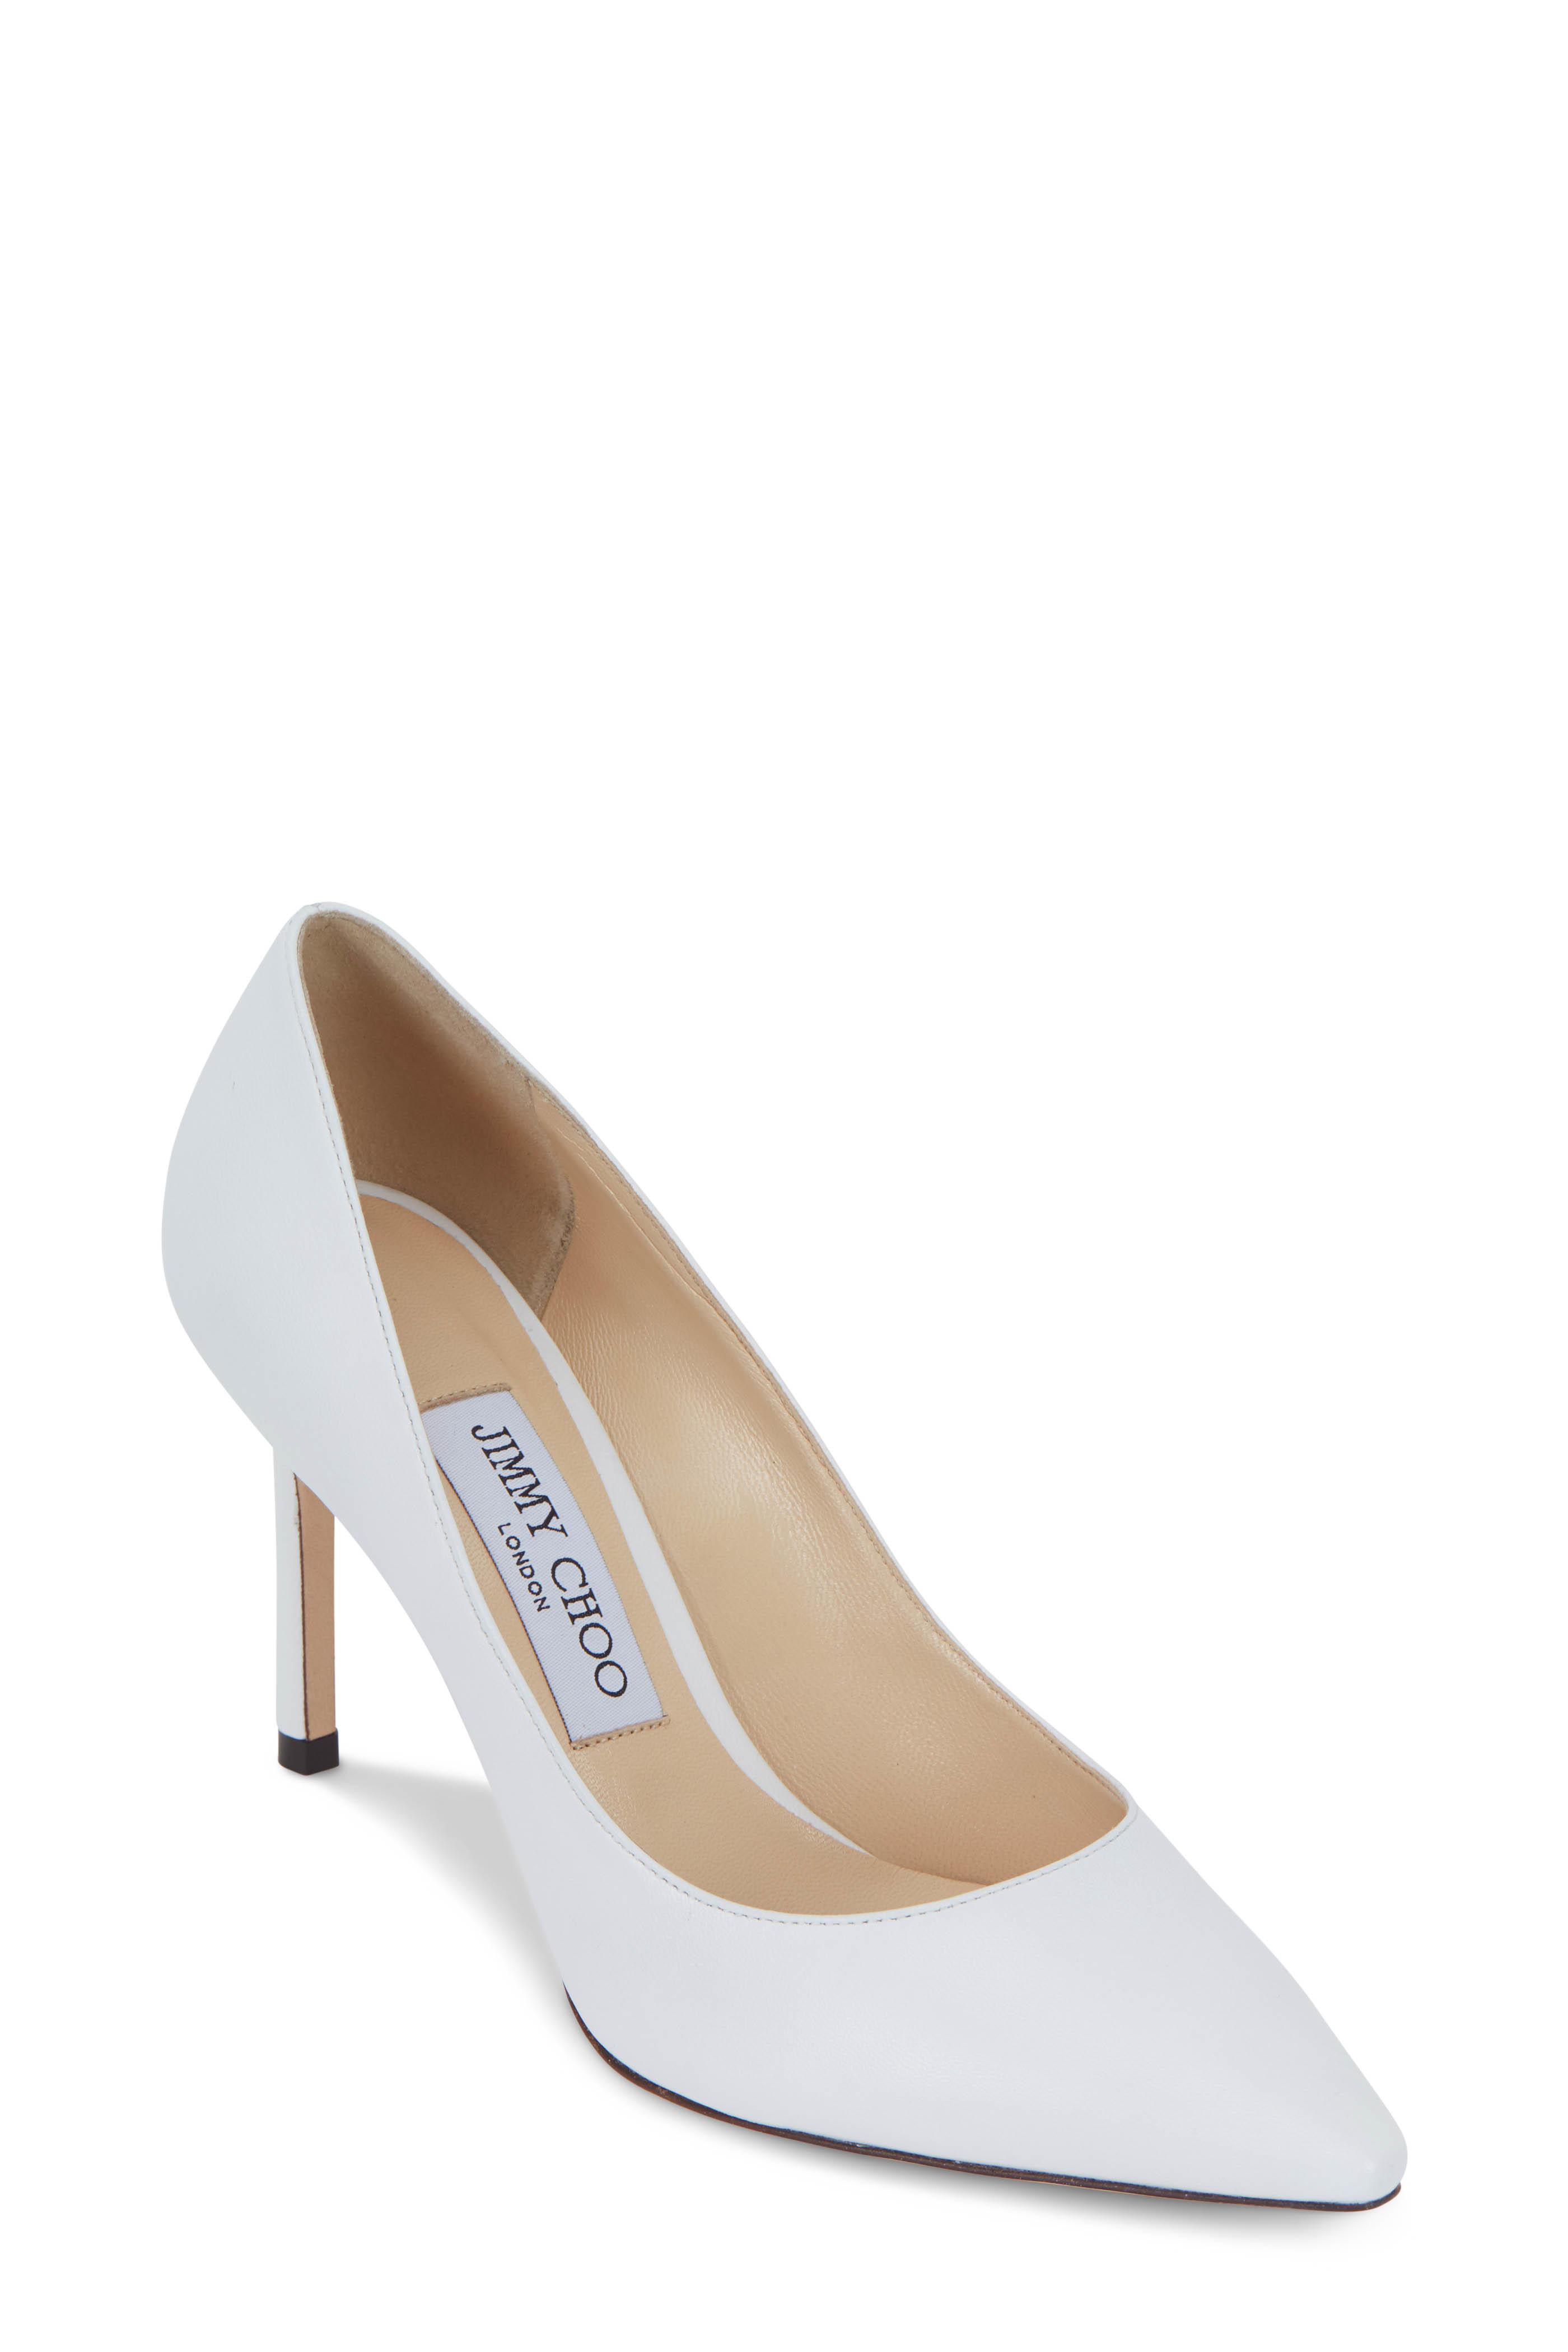 a1742af6a Jimmy Choo - Romy Optic White Leather Pump, 85mm | Mitchell Stores